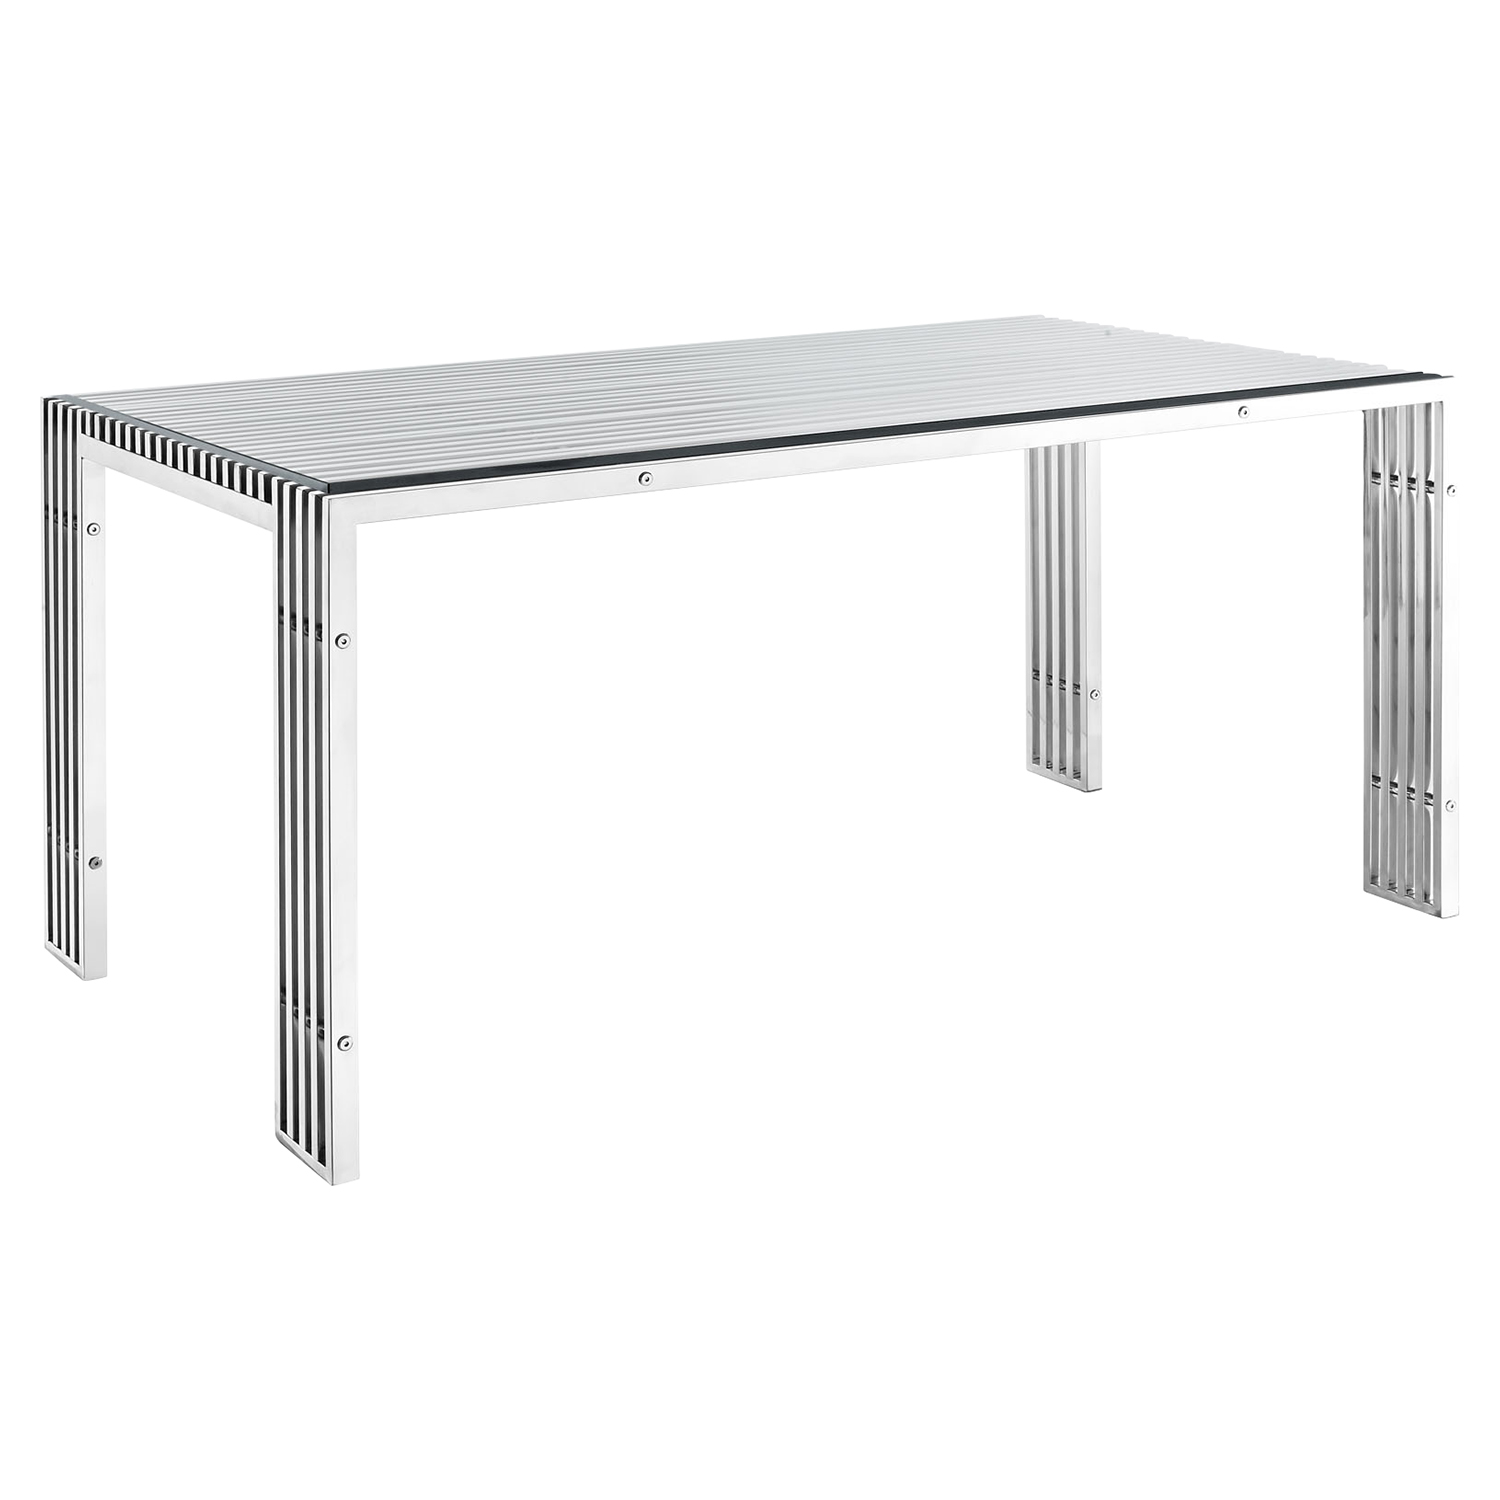 Gridiron Stainless Steel Dining Table - EEI-1434-SLV